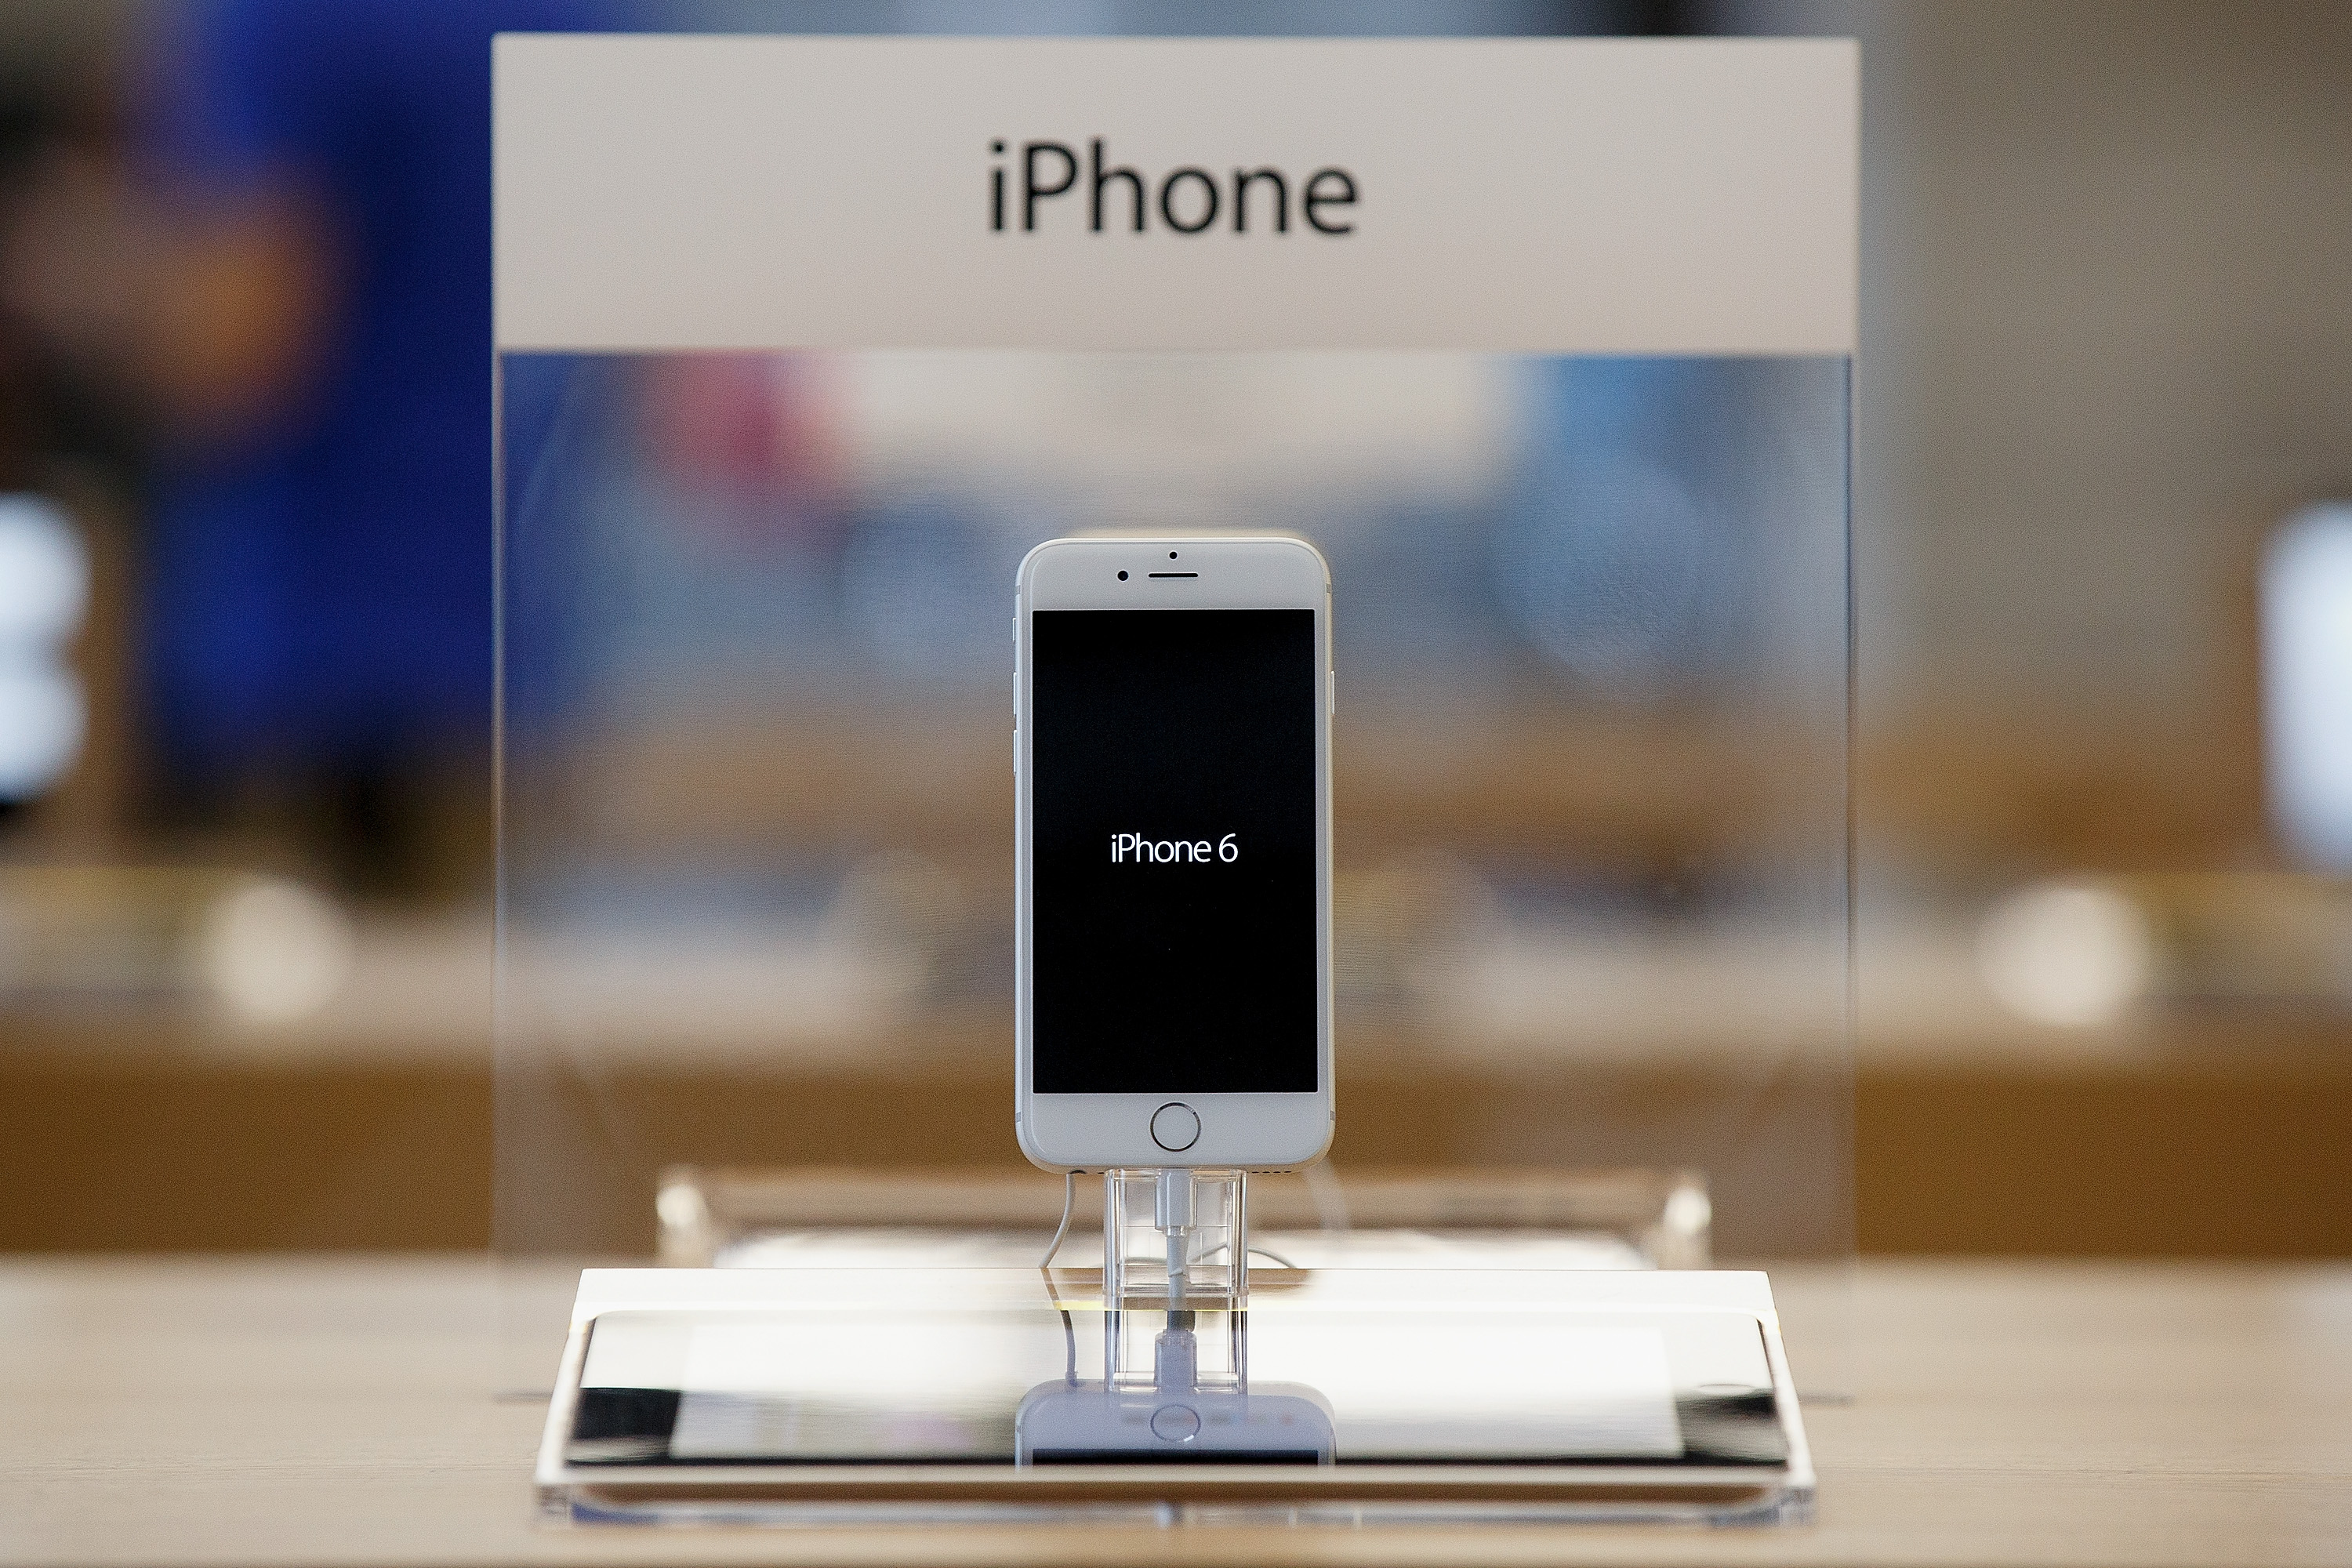 <strong>The iPhone 6 is much faster.</strong> With 802.11ac Wi-Fi, the iPhone 6's Wi-Fi speeds are up to three times faster than those of the iPhone 5s. The iPhone 6 also has faster LTE than the iPhone 5s, and it can make use of more frequency ranges than other iPhones, making for better roaming capabilities.